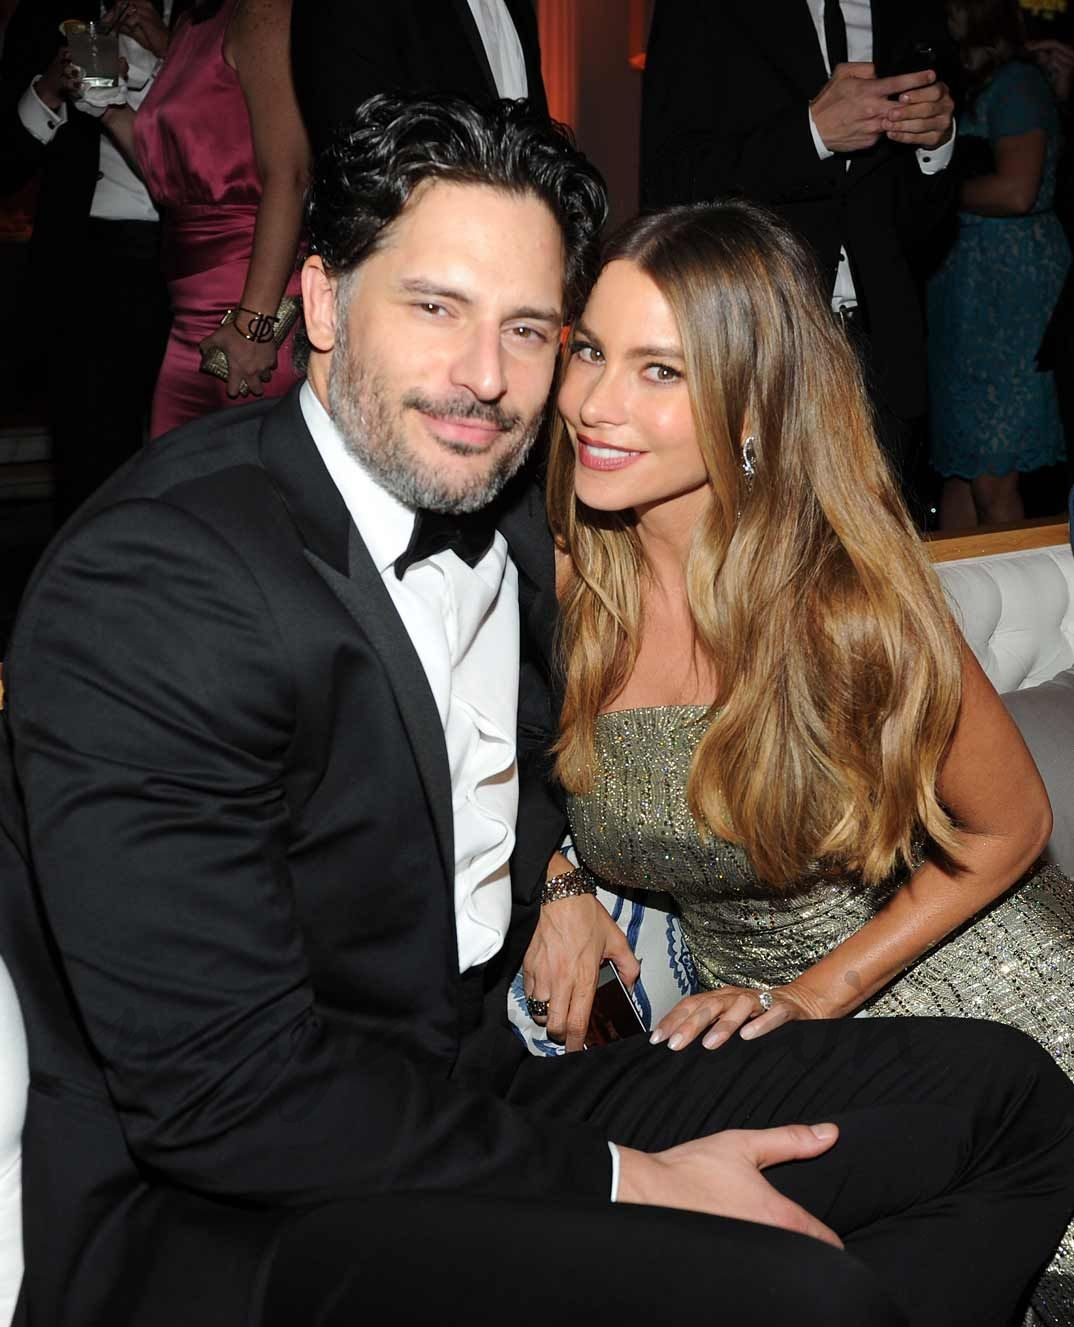 Sofia vergara joe manganiello started dating, nude girls with big tits getting fucked